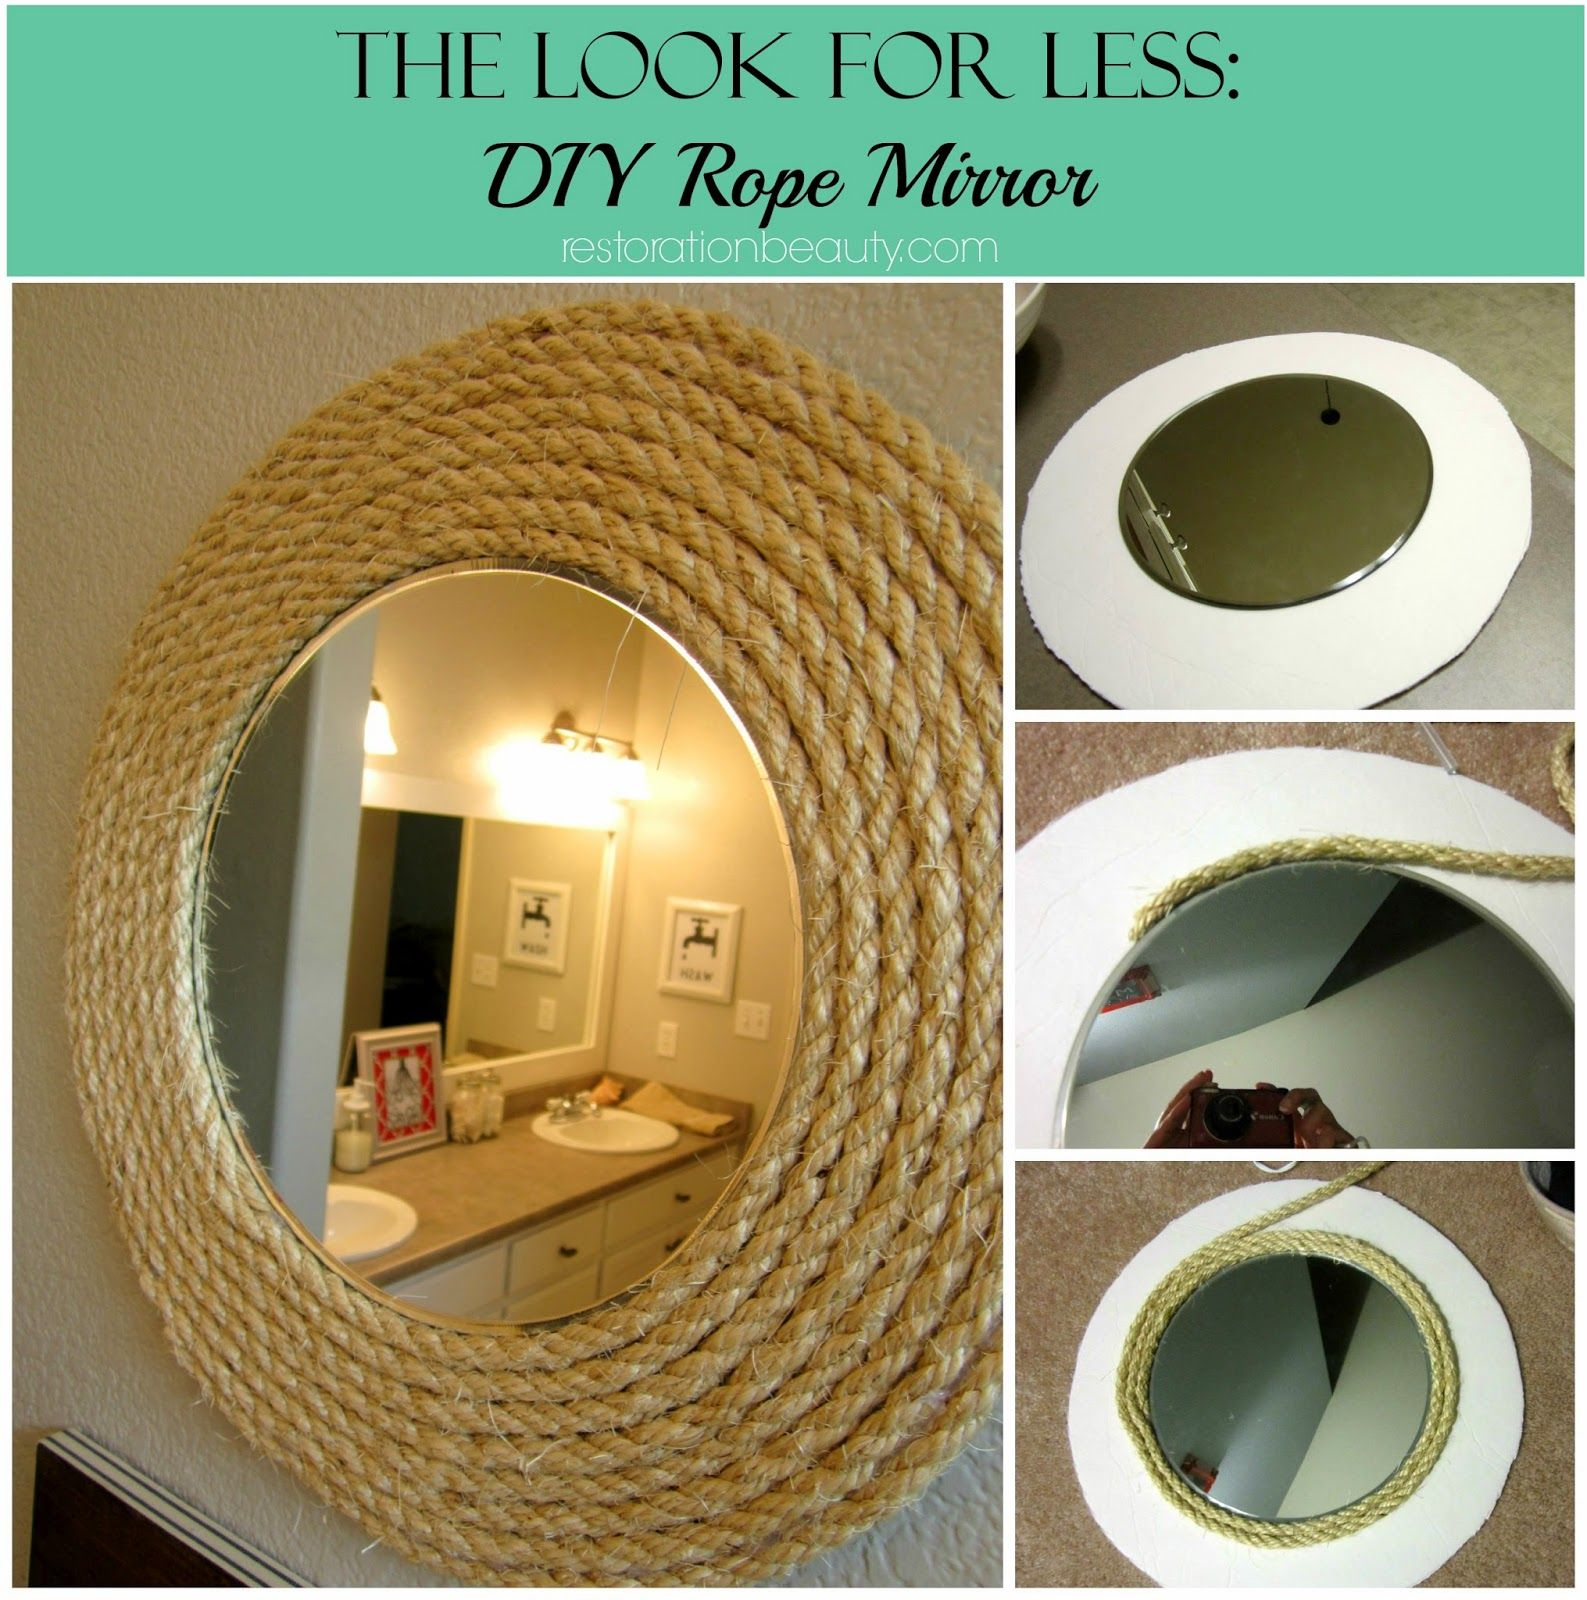 Diy Nautical Rope Mirror How To Make Rounded Or Square Rope Mirror Rope Mirror Nautical Rope Mirror Nautical Diy